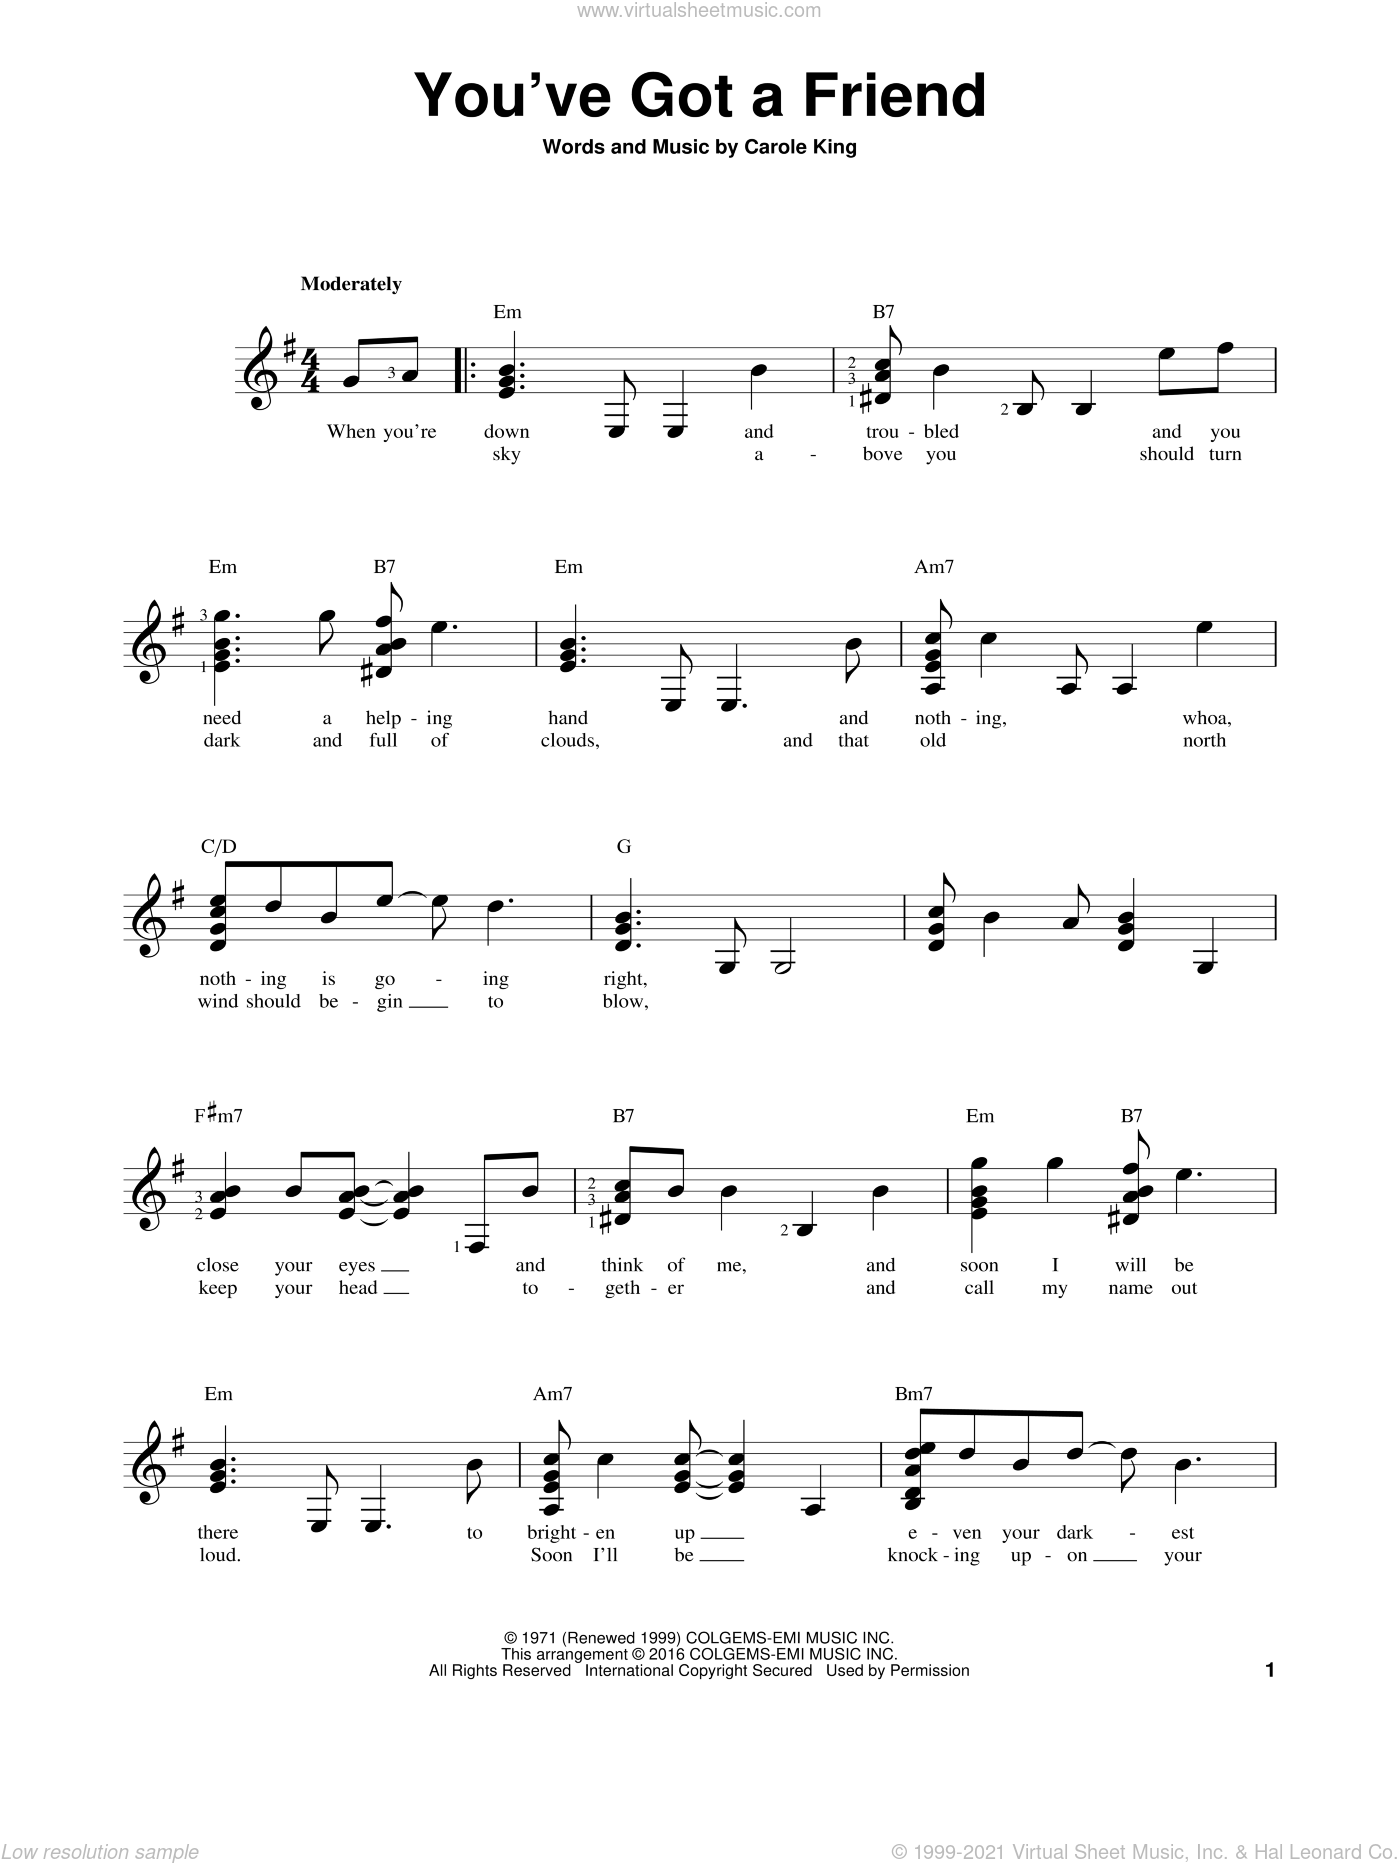 You've Got A Friend sheet music for guitar solo (chords) by Carole King